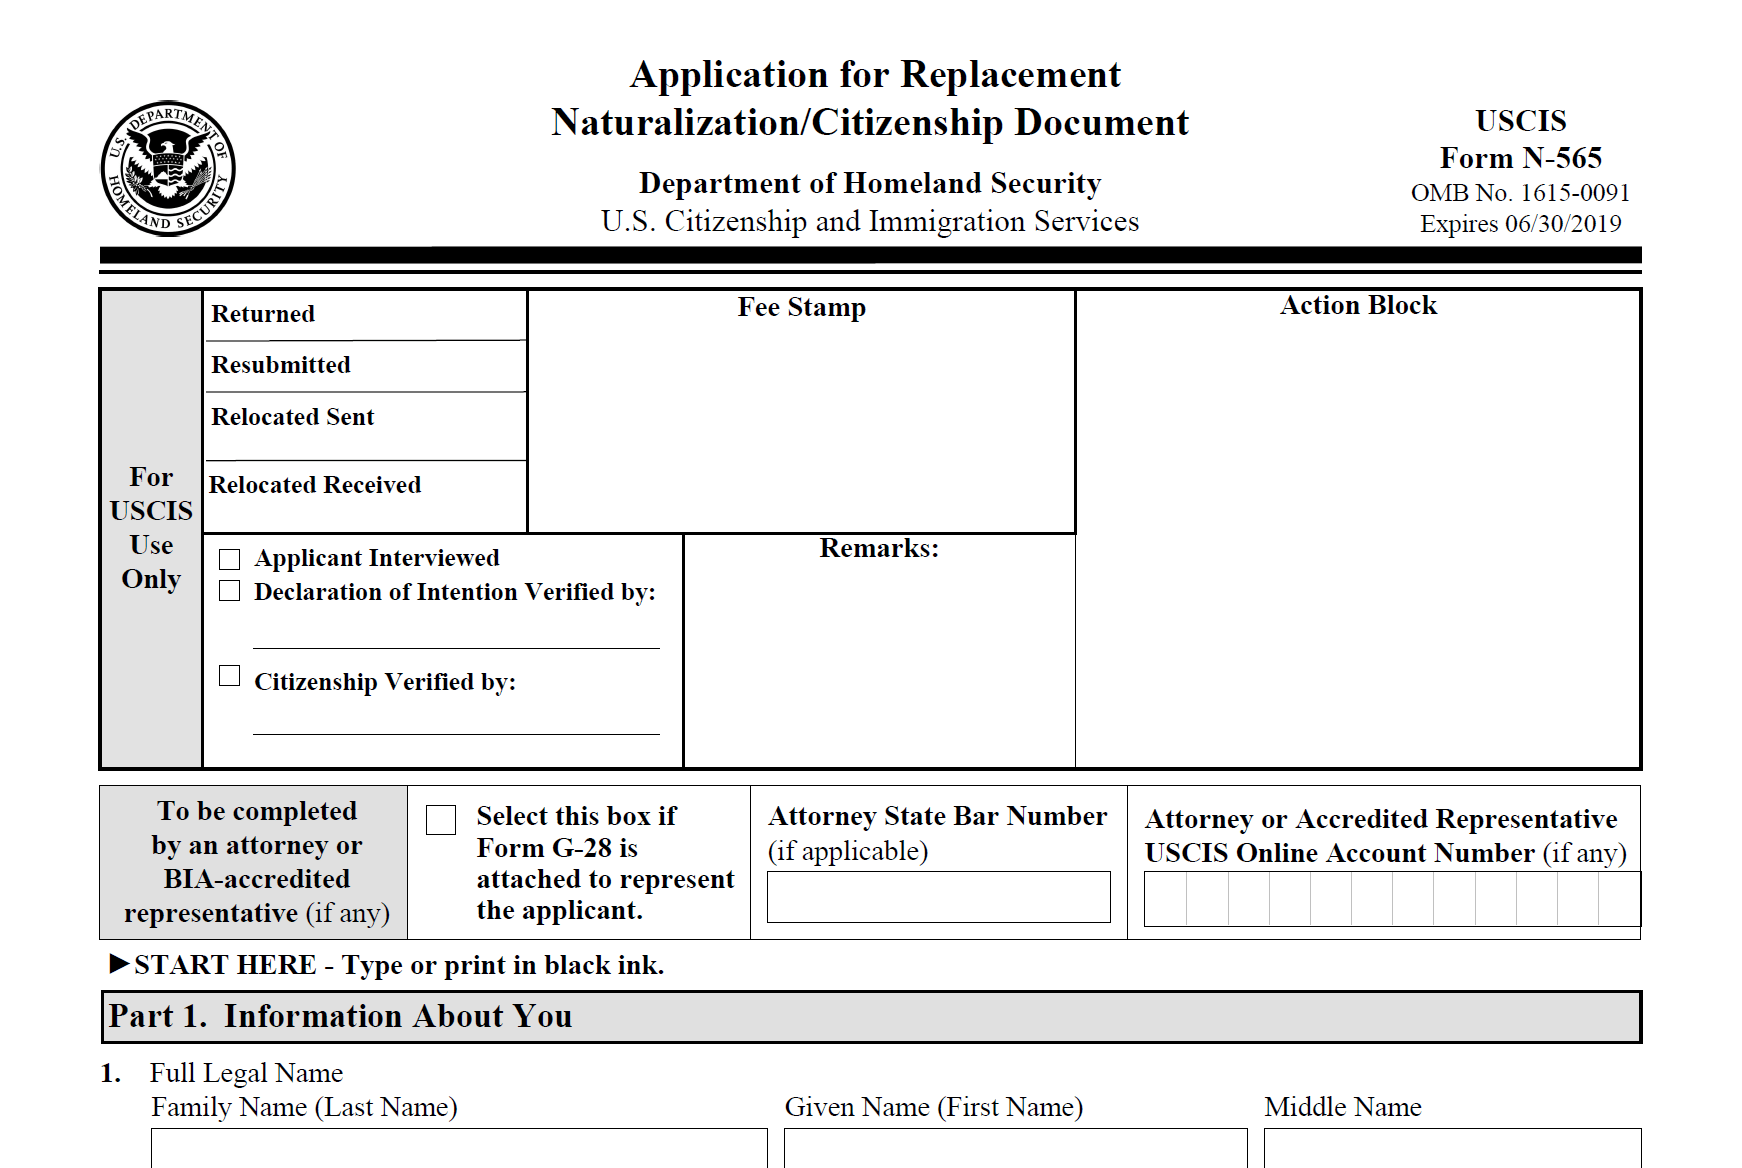 Form N-565: Application for Replacement Naturalization or Citizenship Document